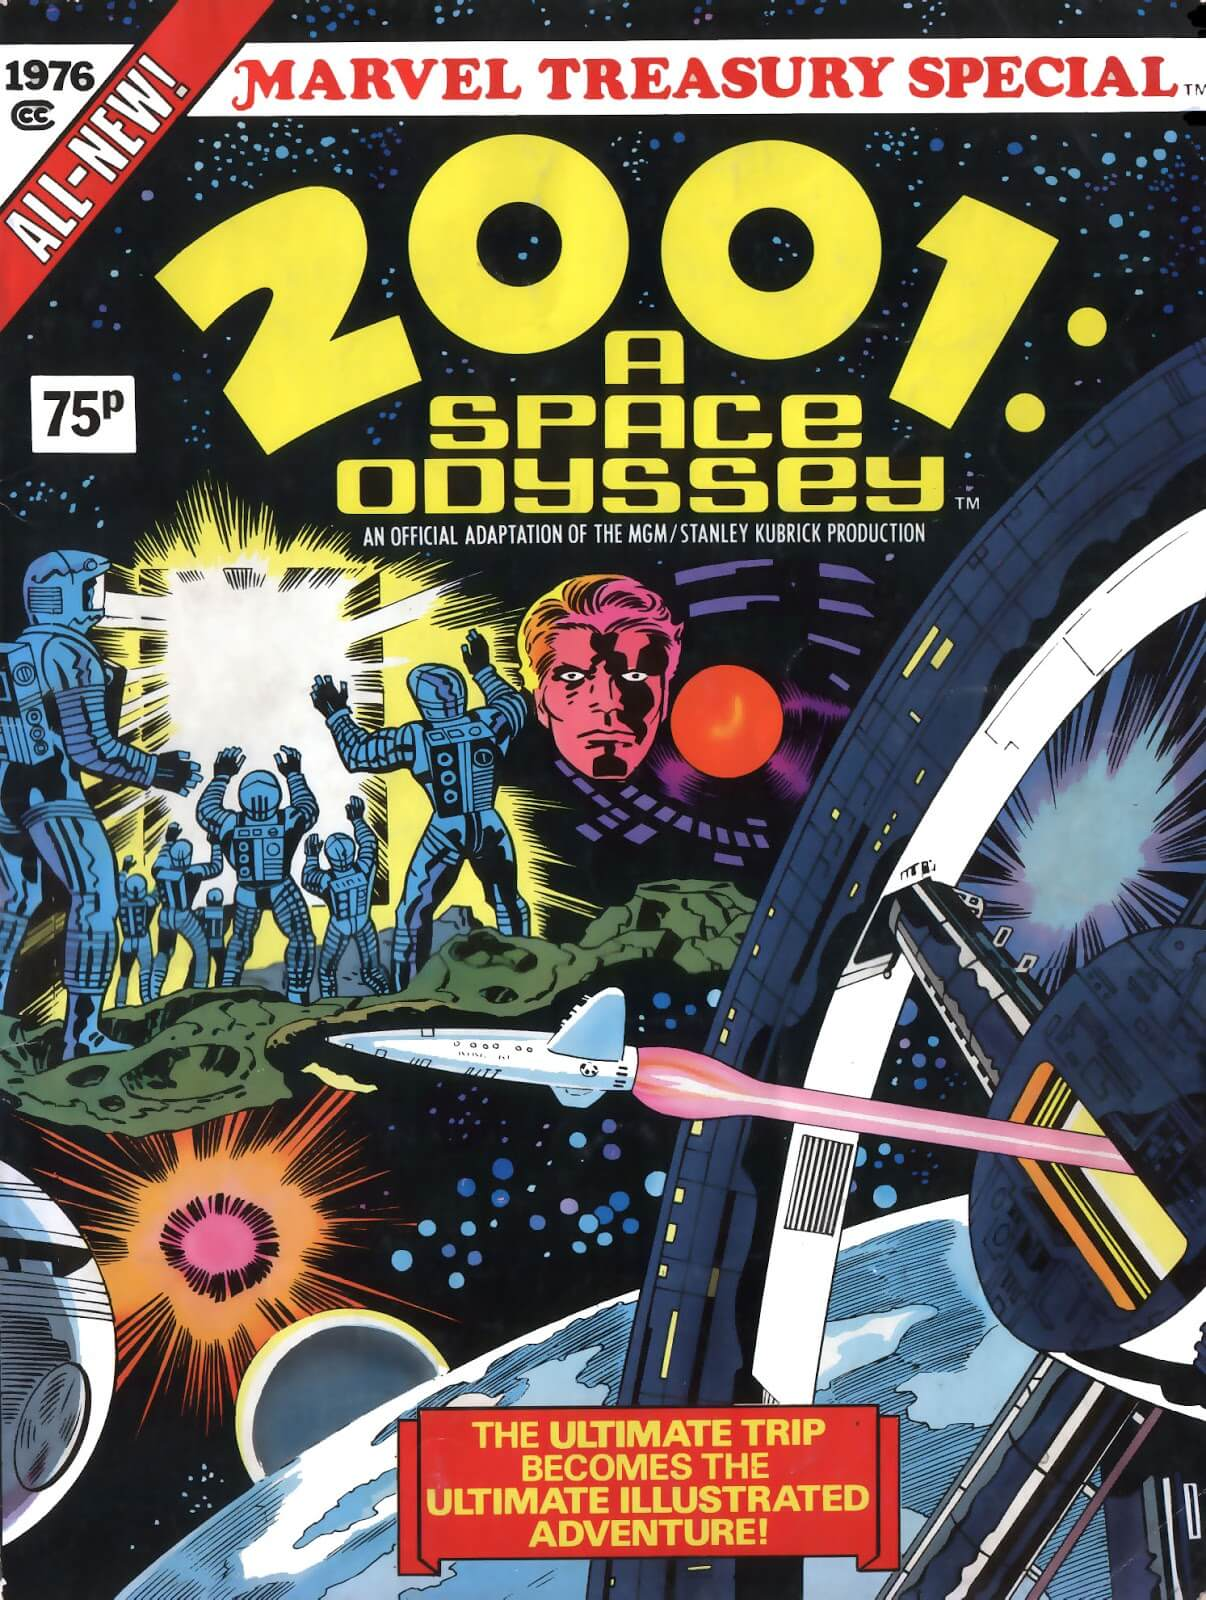 2001: A Space Odyssey - Jack Kirby's Comics Cover Art